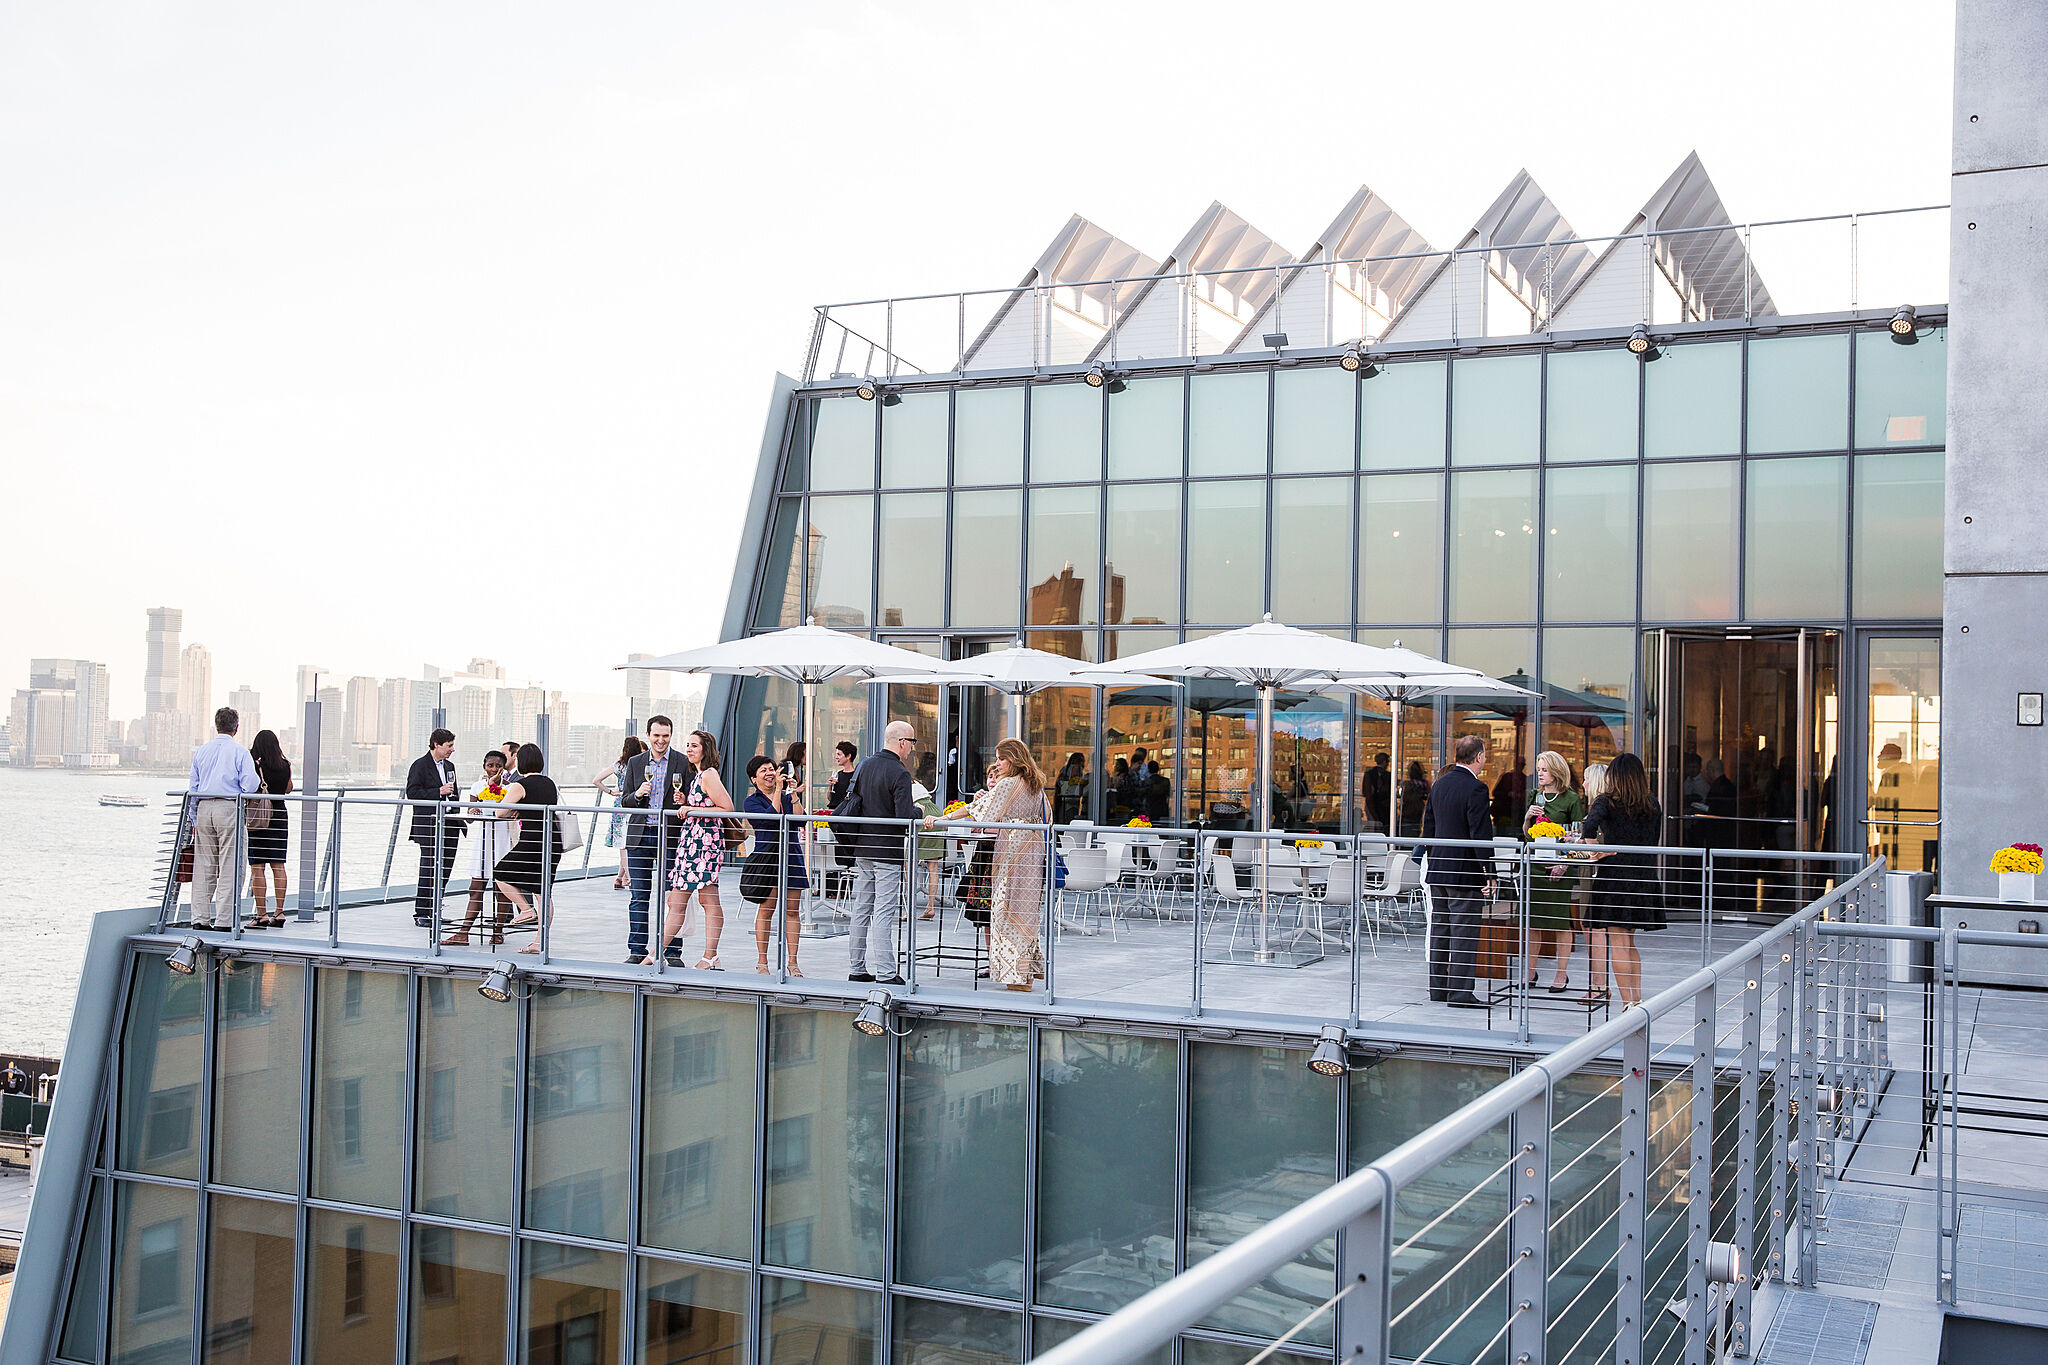 Museum guests in semi formal evening attire mingle on the top patio of the Whitney Museum of American Art outside of the Studio Cafe on a bright and beautiful day.